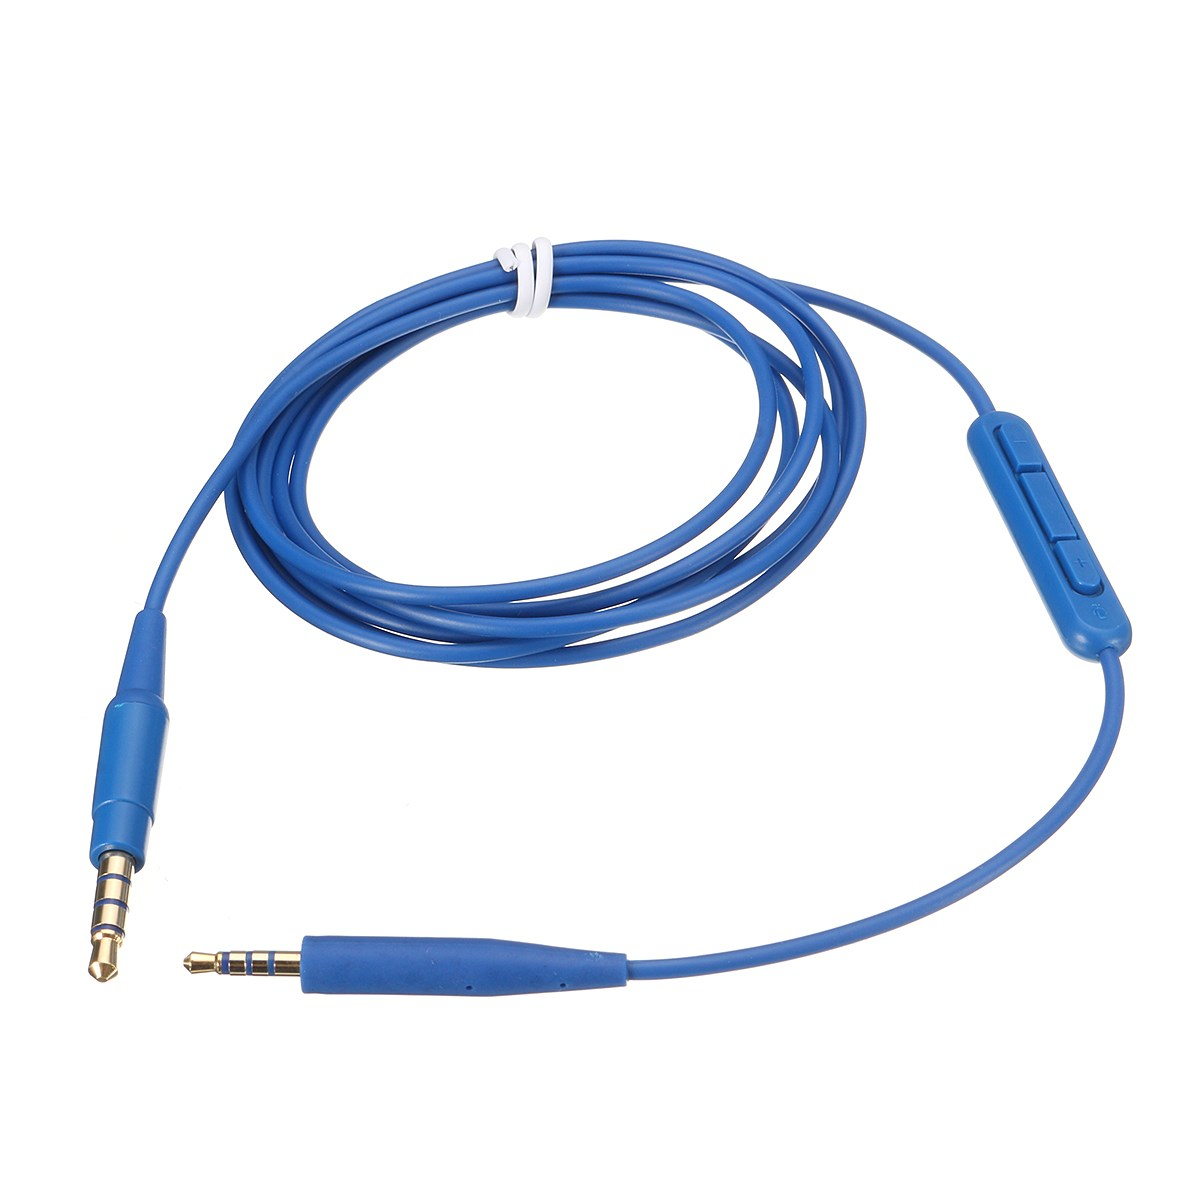 small resolution of  new replacement cable for bose headphones remote audio cable with mic for soundtrue for soundlink on